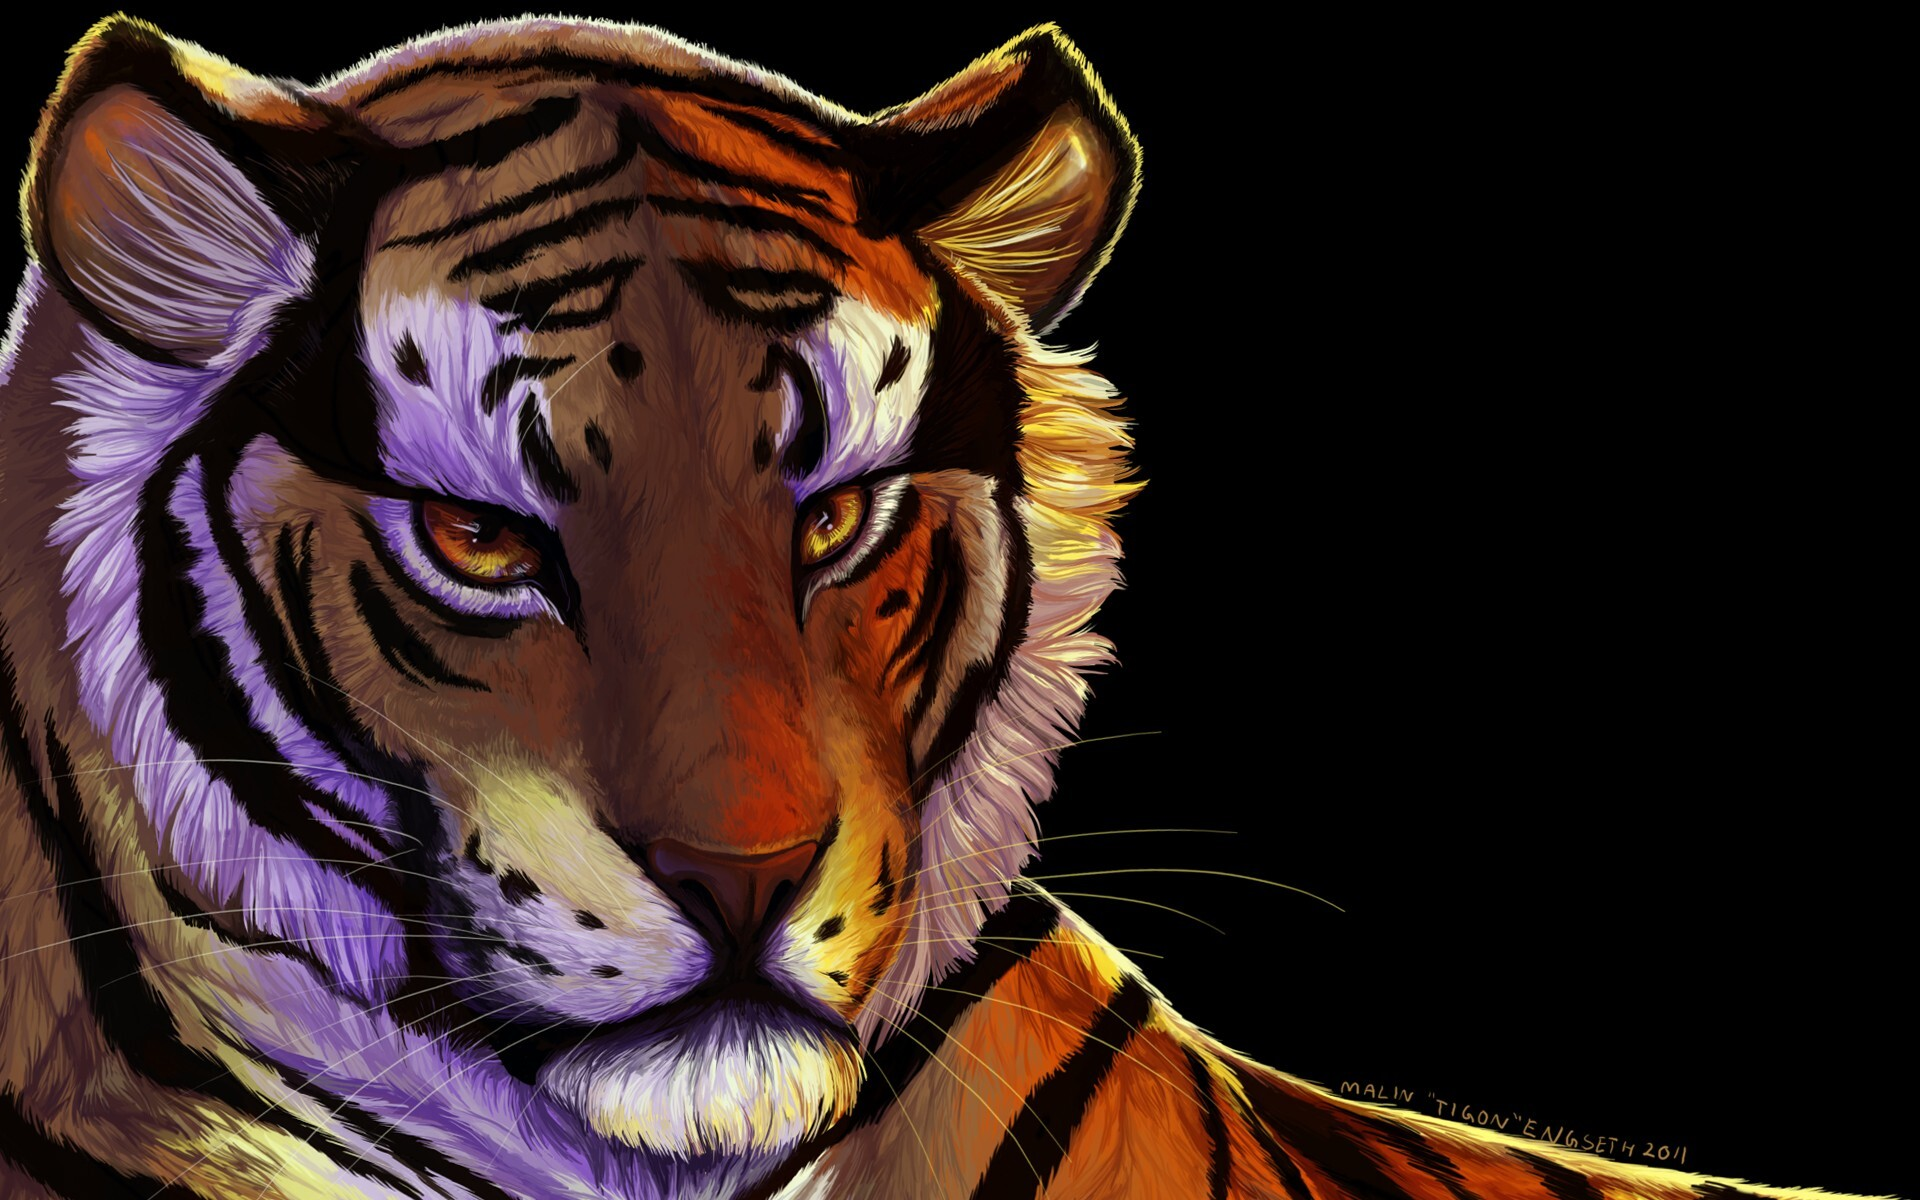 1920x1200 Tiger Art 1080p Resolution Hd 4k Wallpapers Images